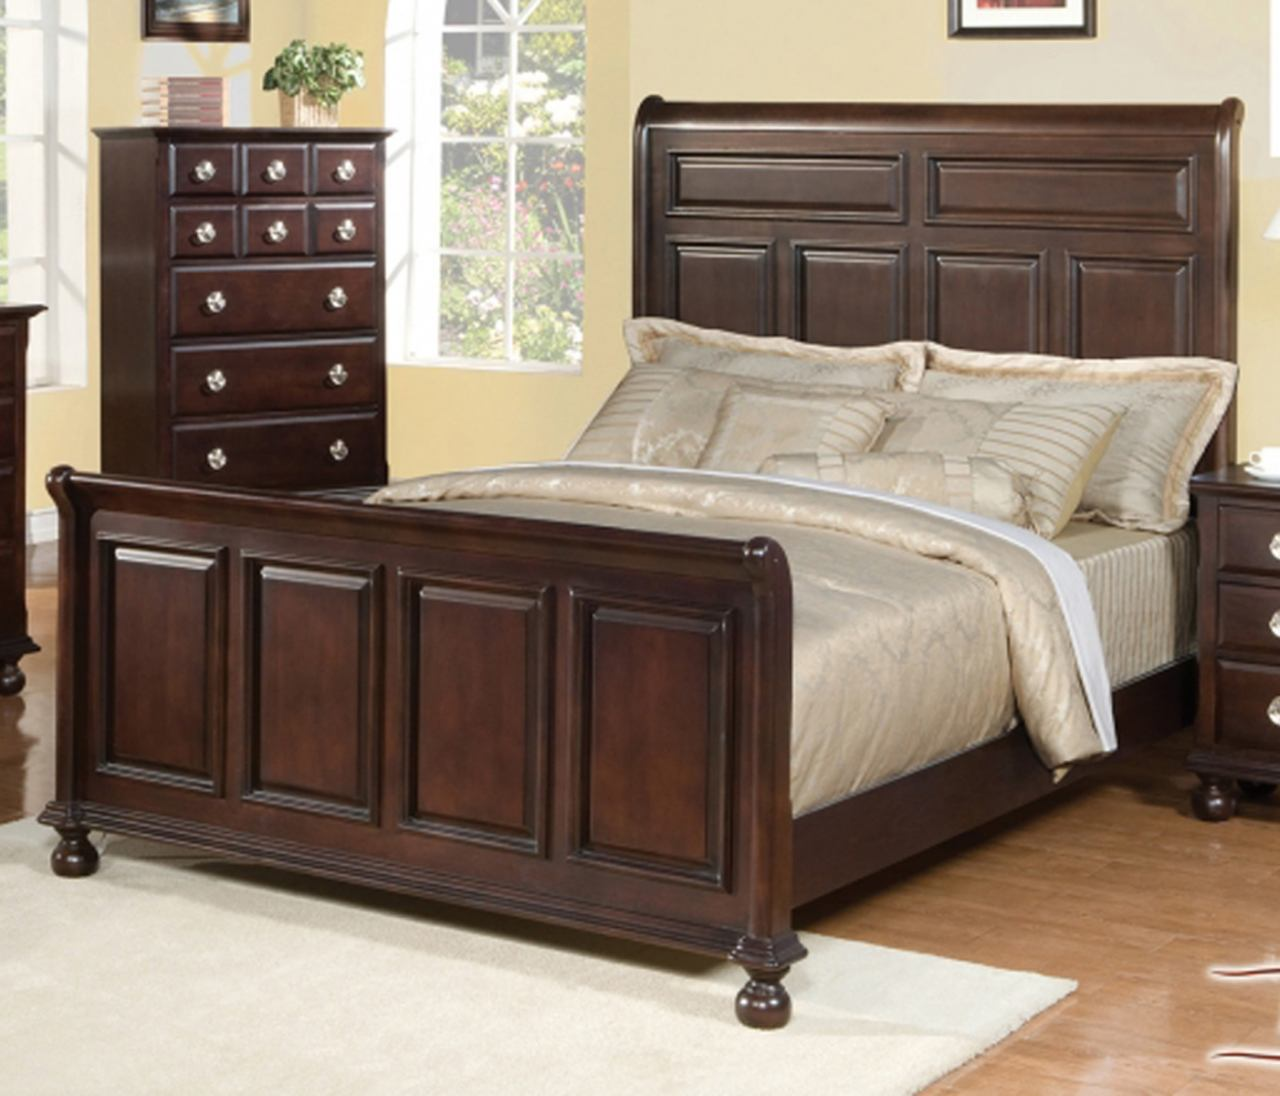 Meridian Brooke King Panel Bed in Espresso